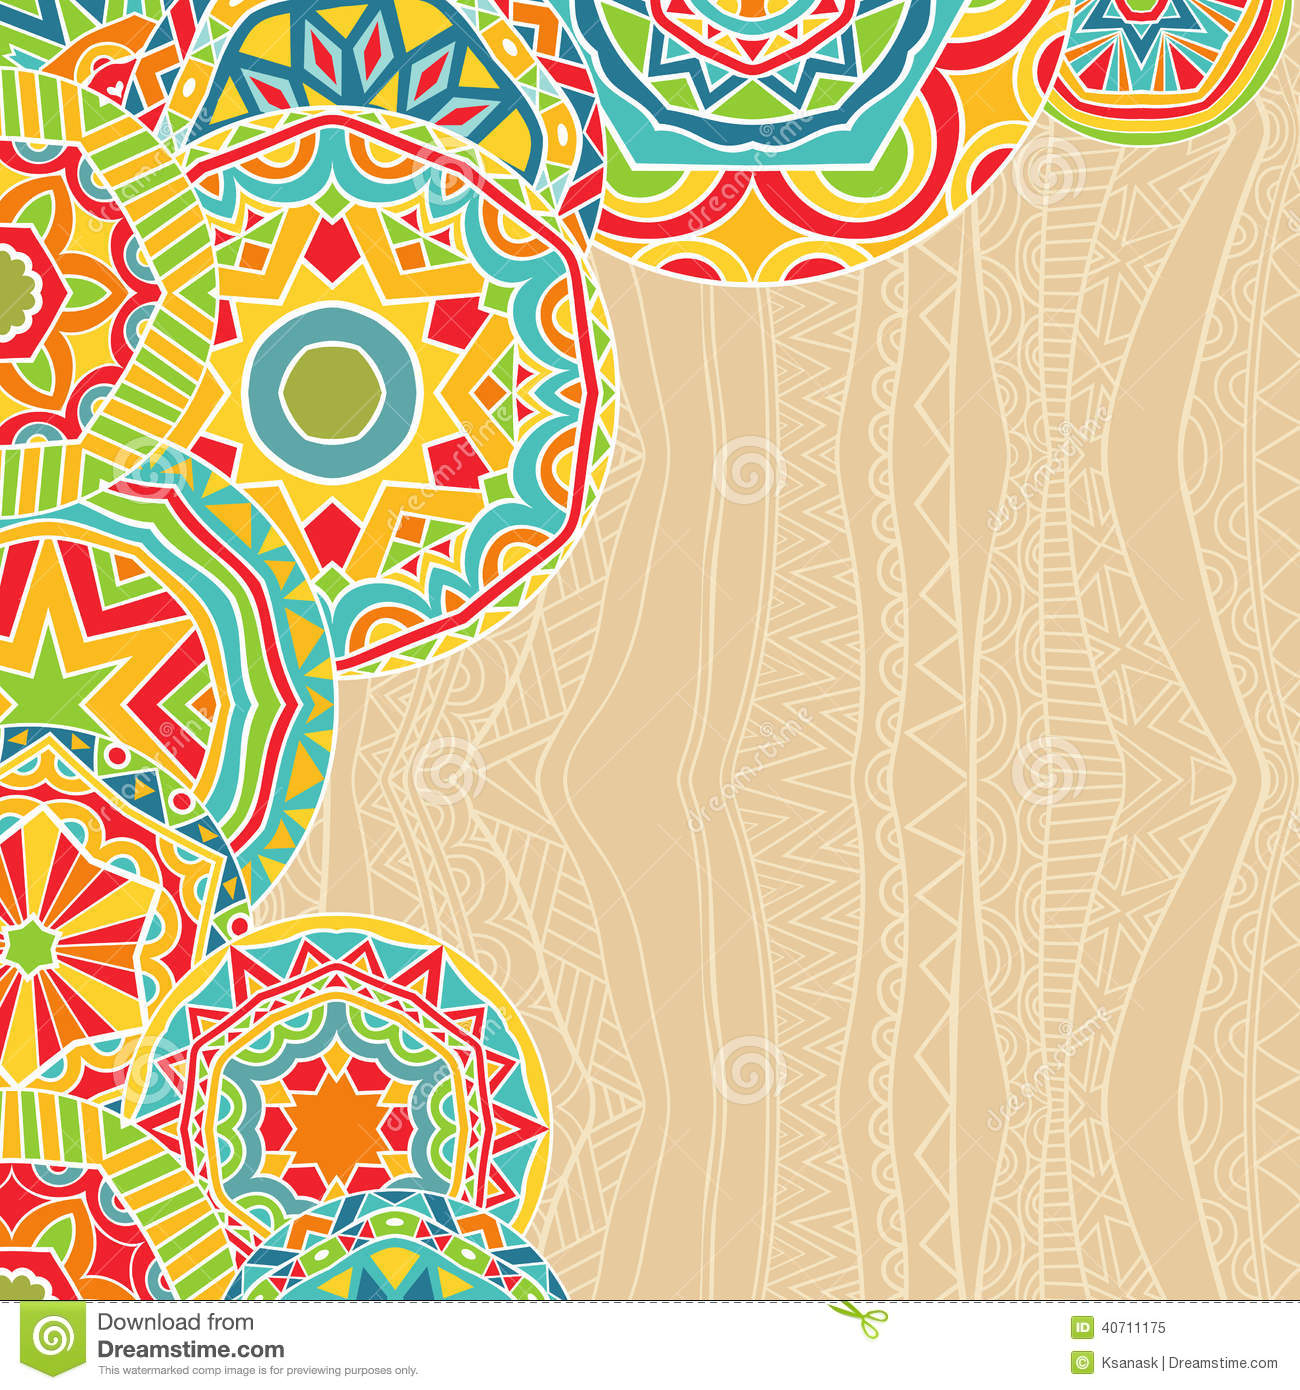 Bright Rounds At Ethnic Background Stock Vector - Image: 40711175